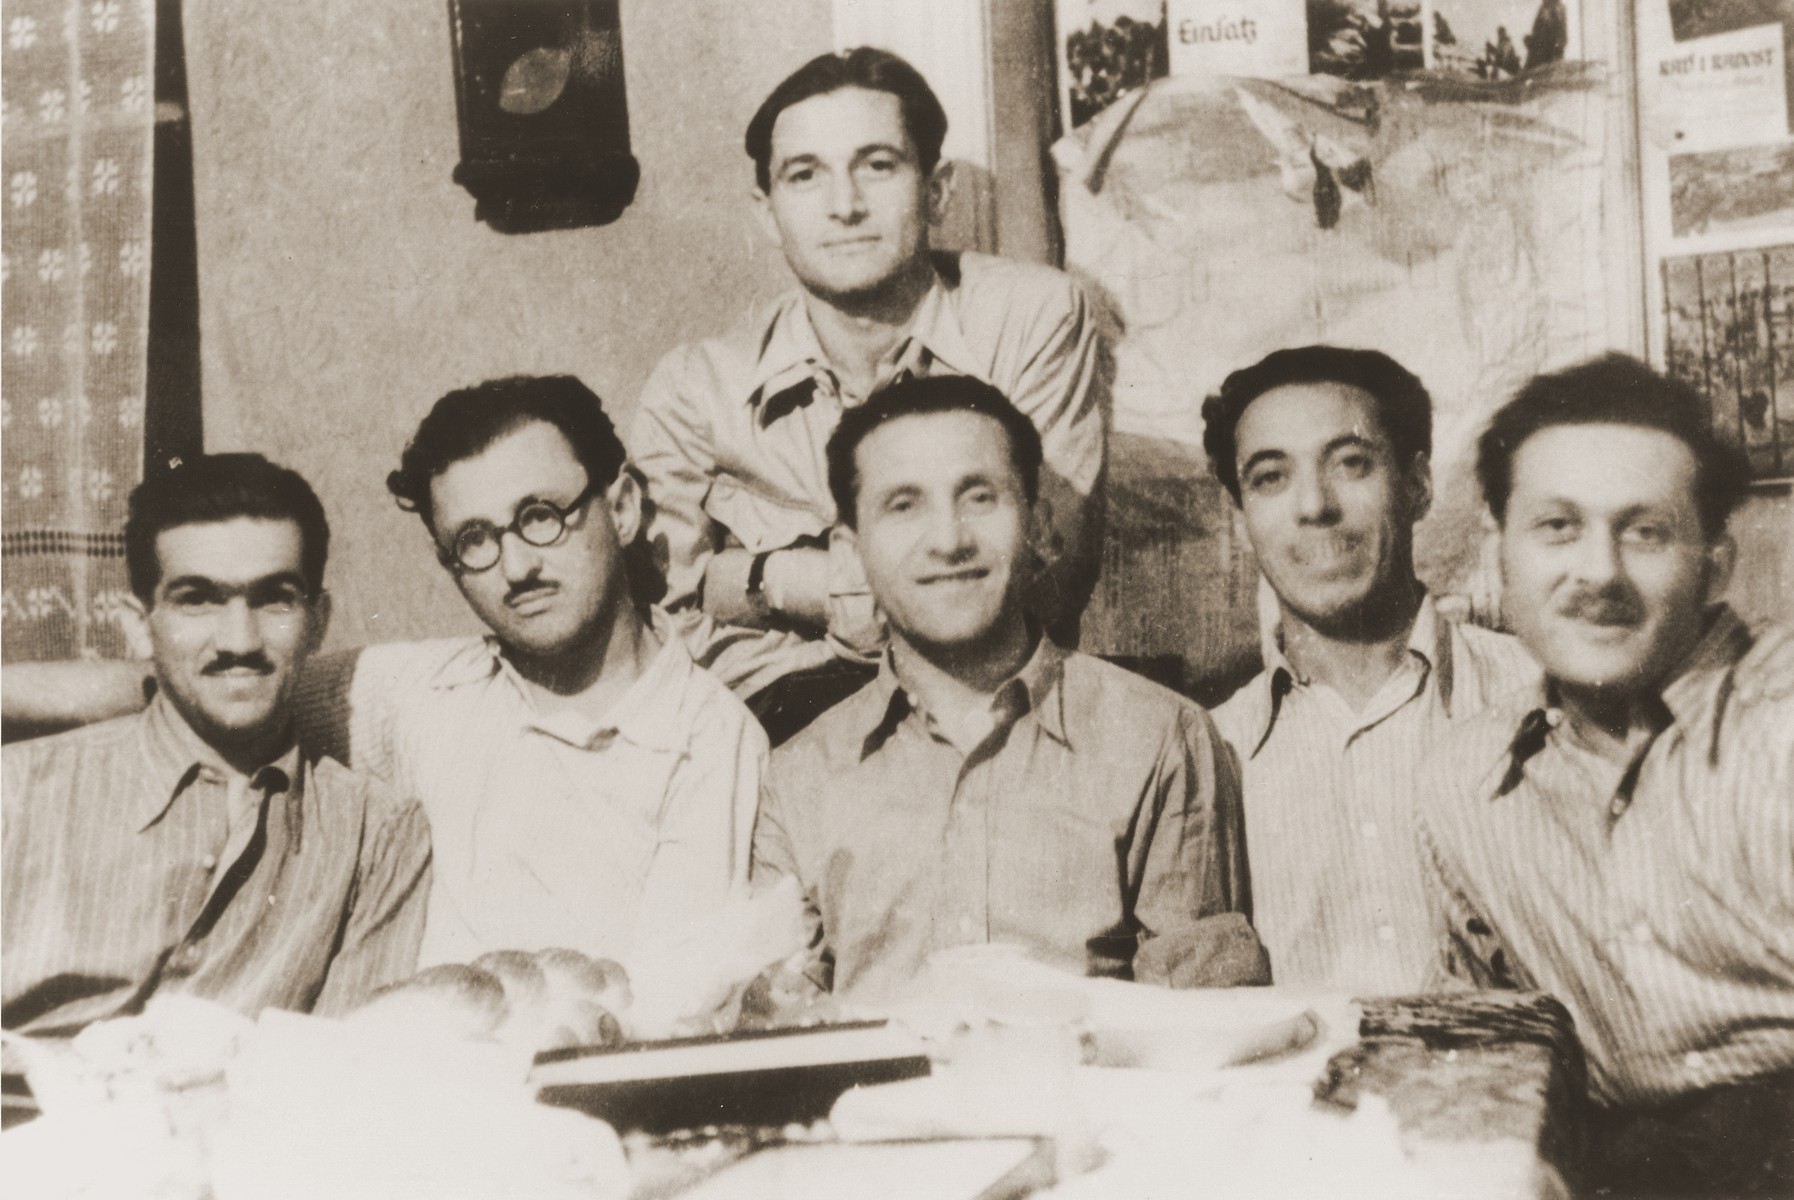 Palestinian Jewish parachutists gather in Bucharest to celebrate the release of Arieh Lupesko and Yehuda Gokovsky from captivity.  Seated from left to right are Arieh Lupsesko, Yitzchak Ben-Efraim, Yeshayahu Trachtenberg, Baruch Kamin, and Yehuda Gokovsky.  Standing behind is Dov (Berger) Harari.